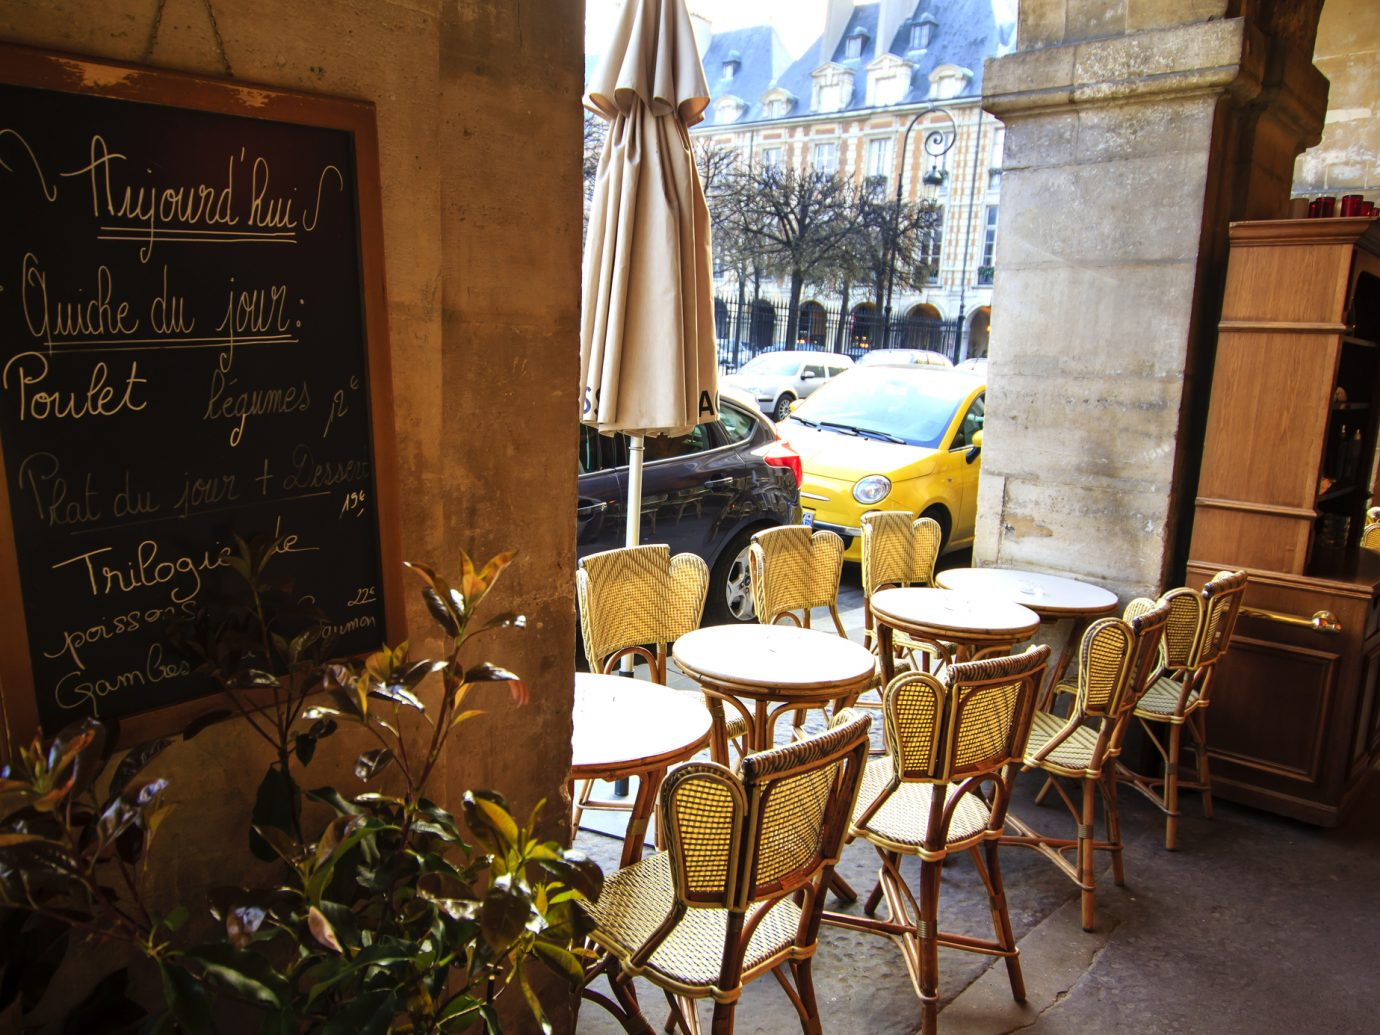 Paris, Place de Vosges - cafe under arches with it's aligned tables and menu board on the wall.